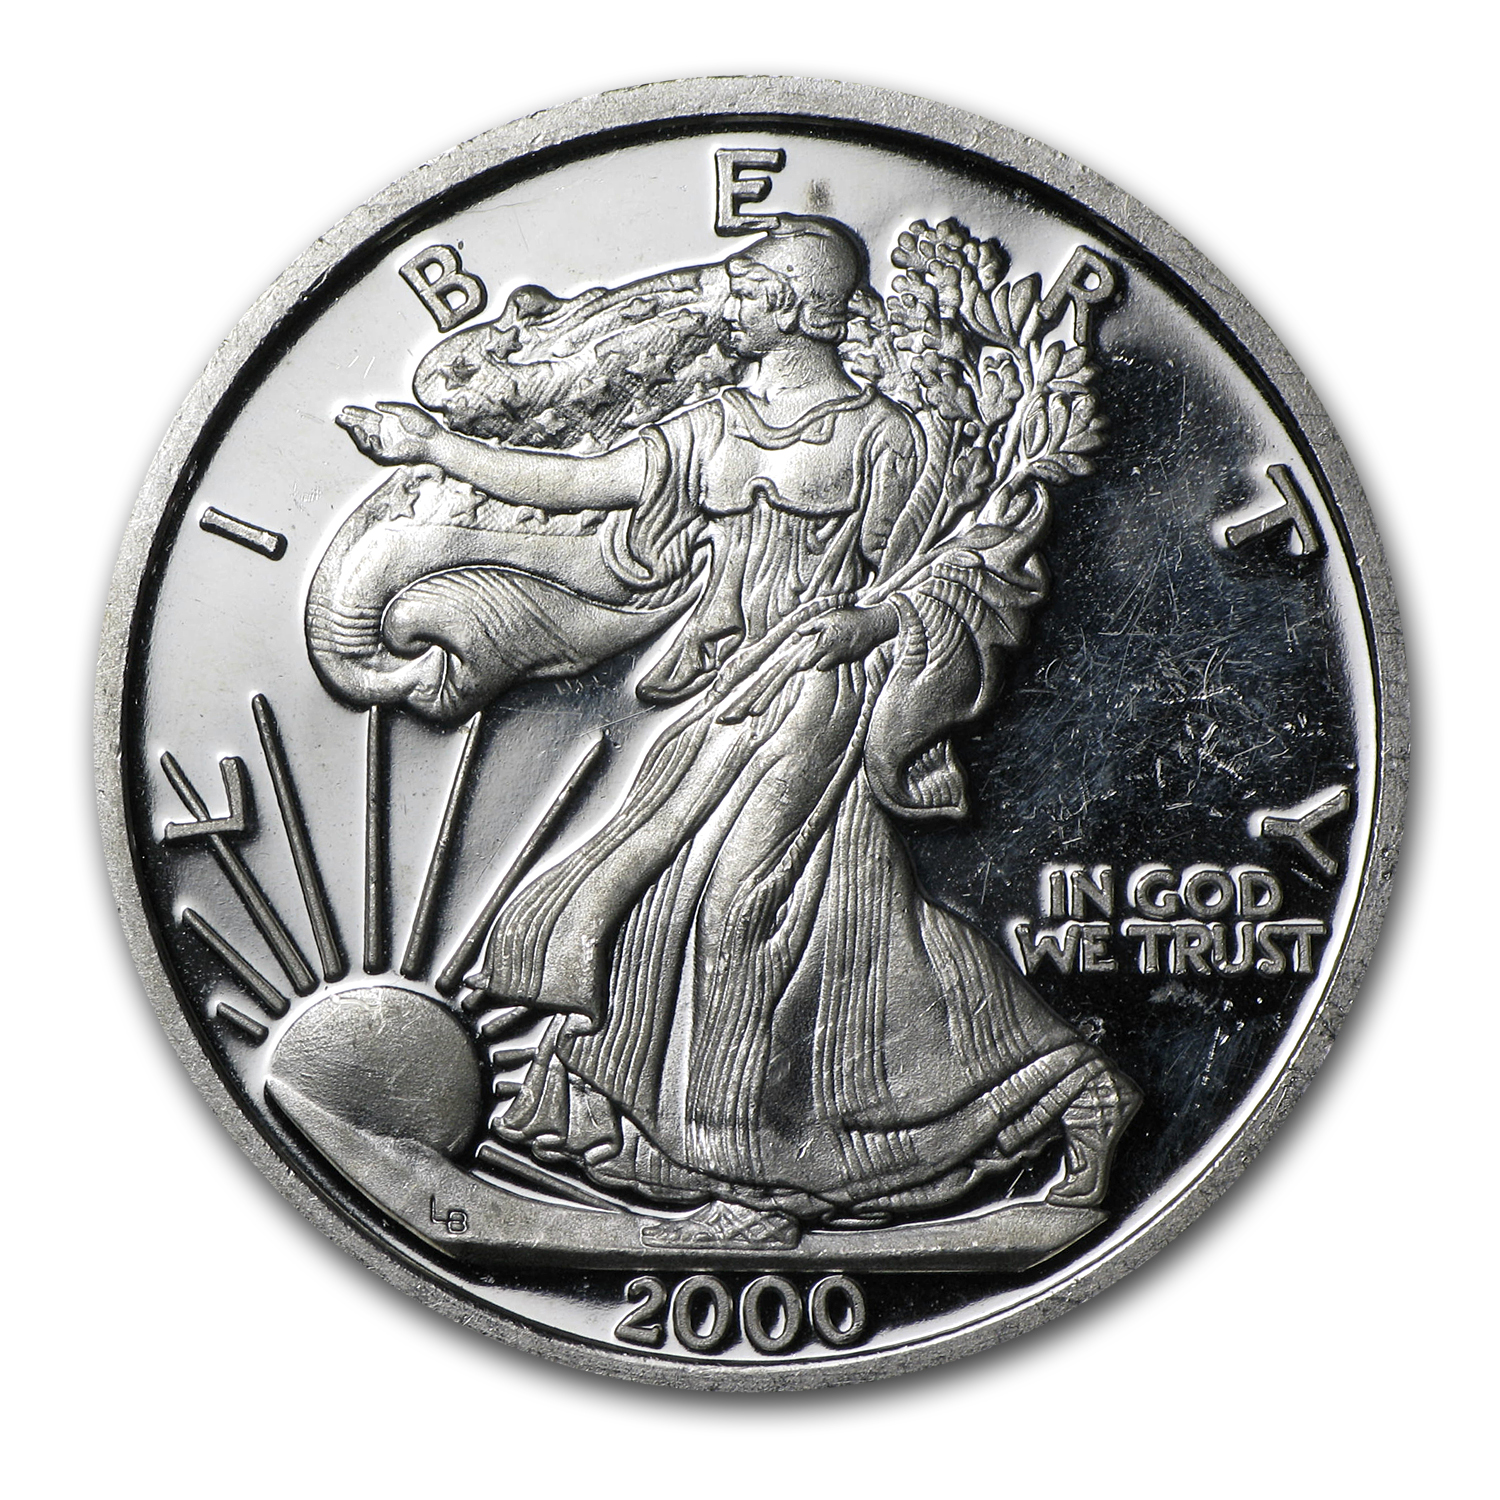 .40 oz Silver Rounds - Millennium Eagle